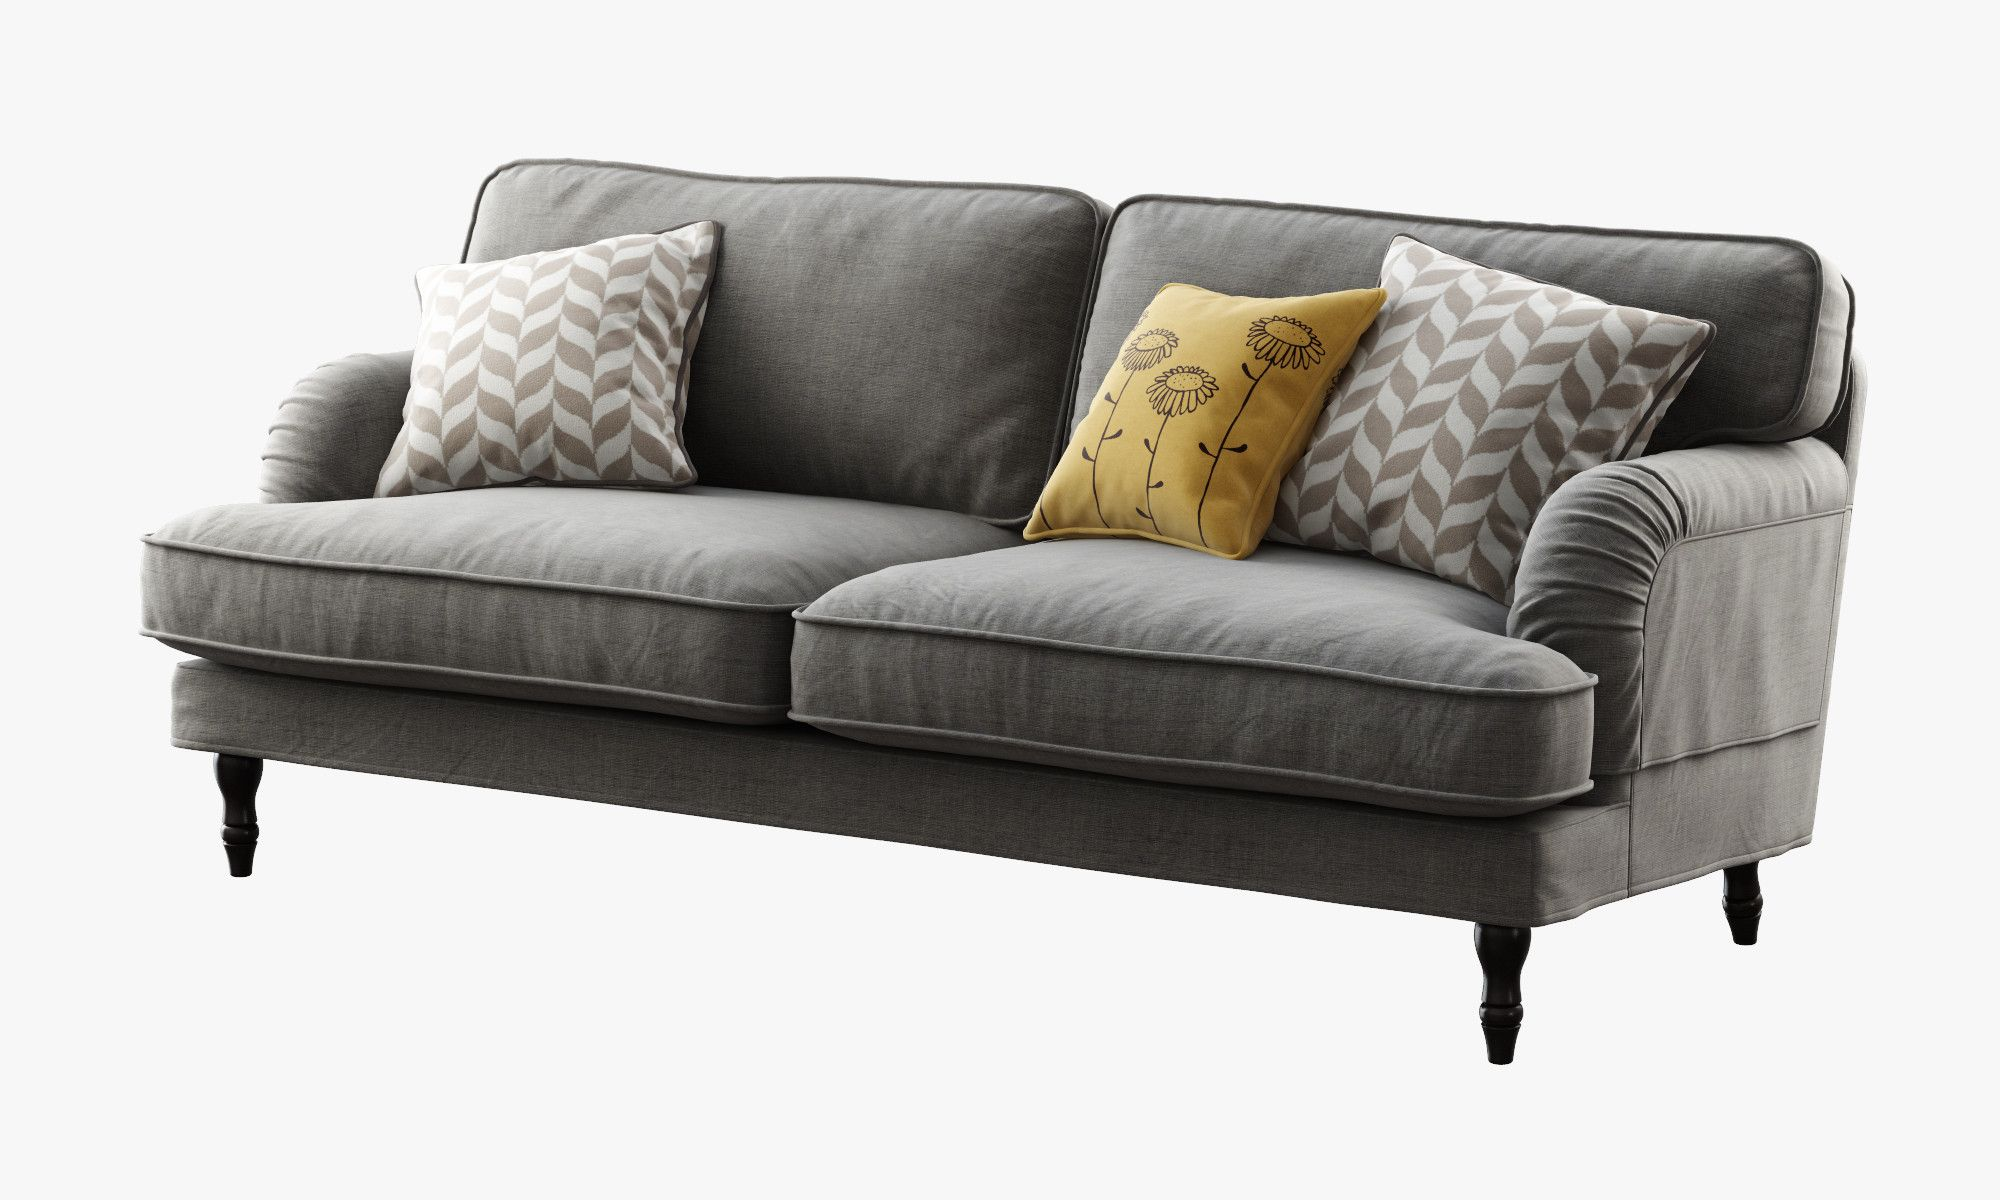 Ikea Vilasund Sofa Bed Best Ikea Sofa Ikea Vilasund And Backabro Review Return Of